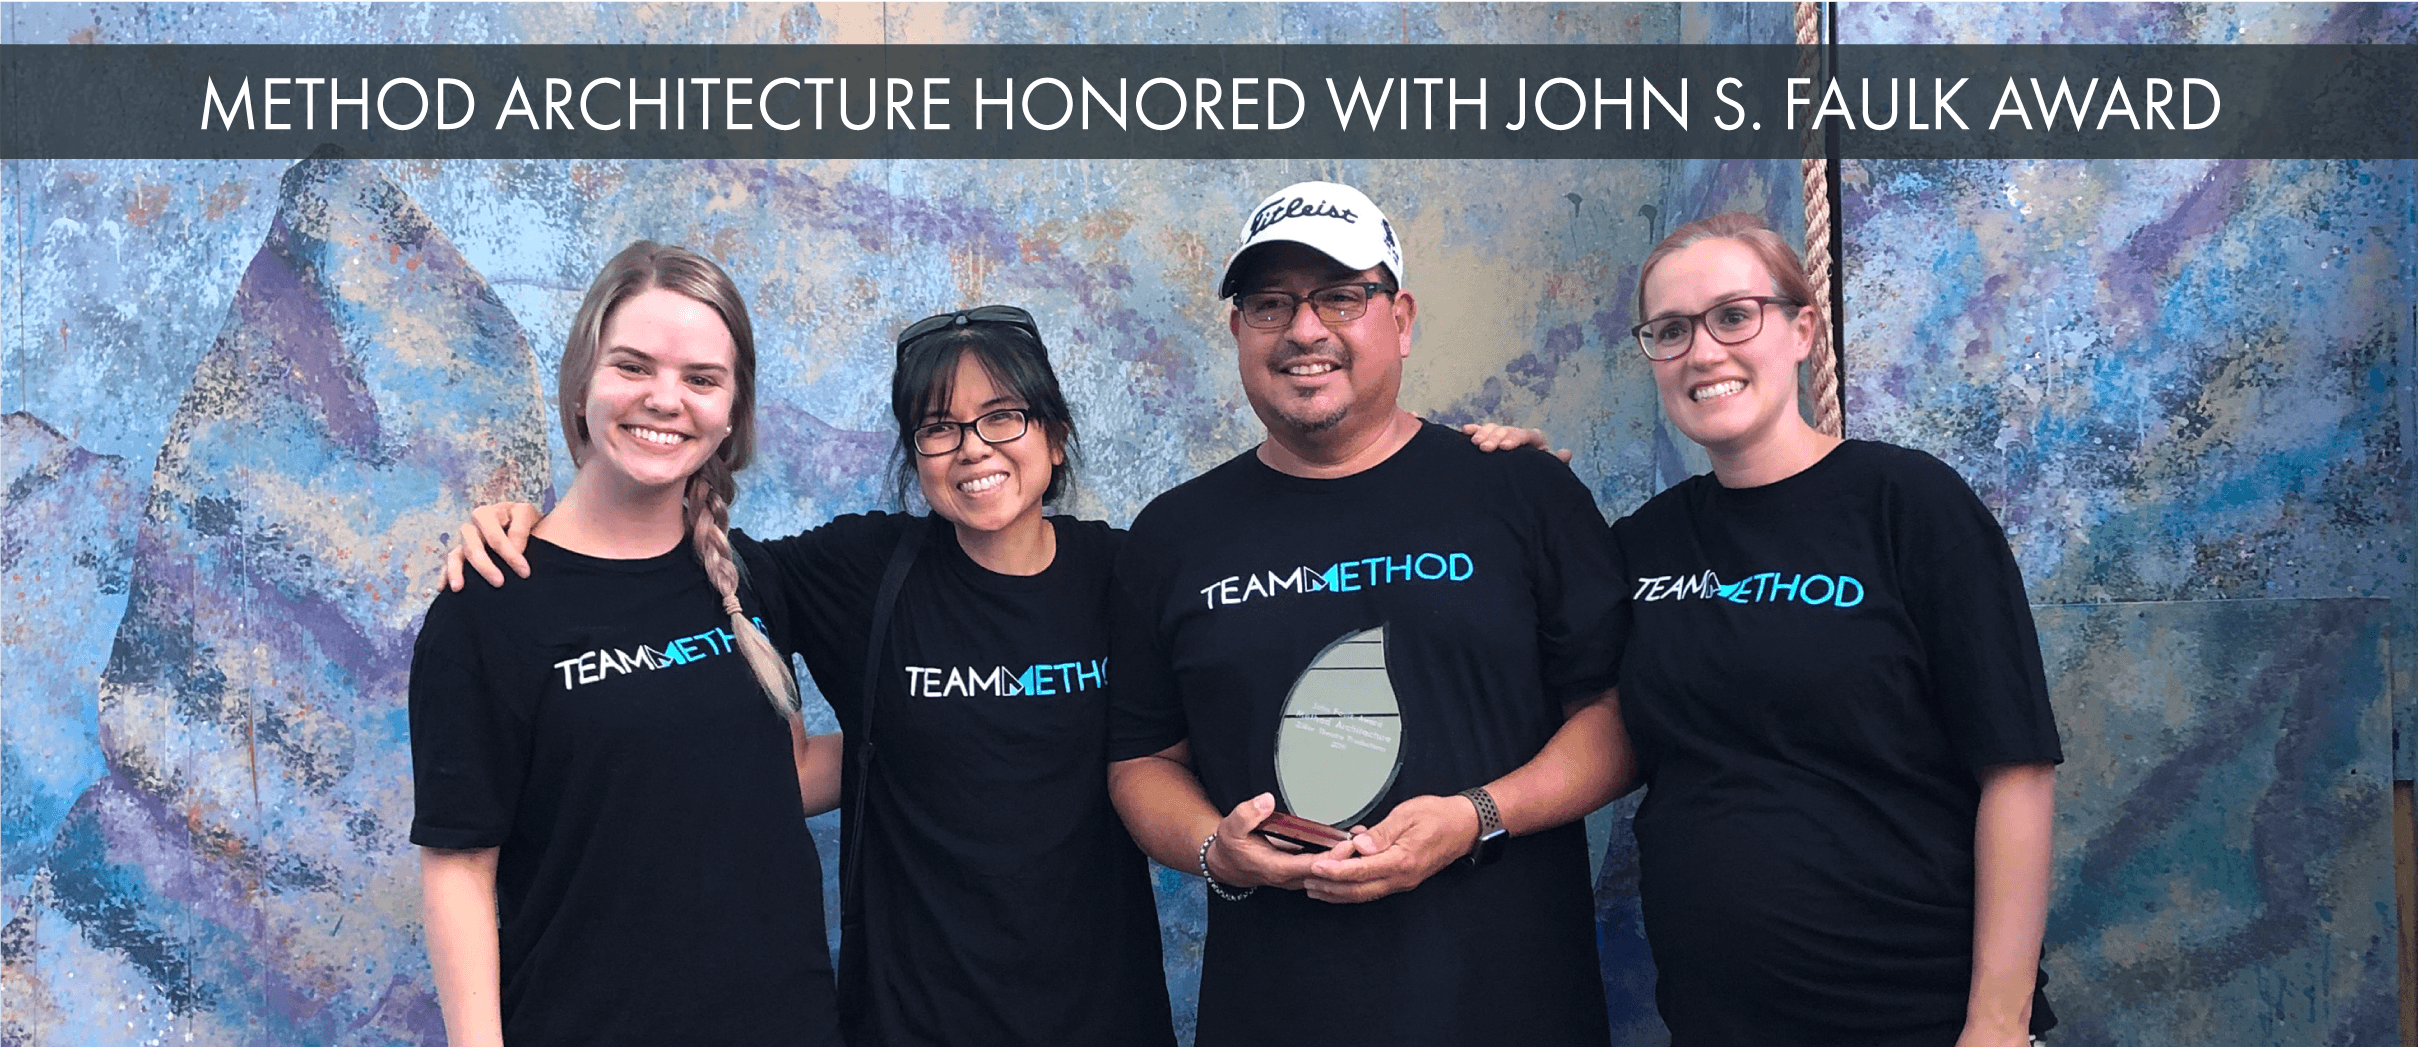 Method Architecture Awarded the John S. Faulk Award